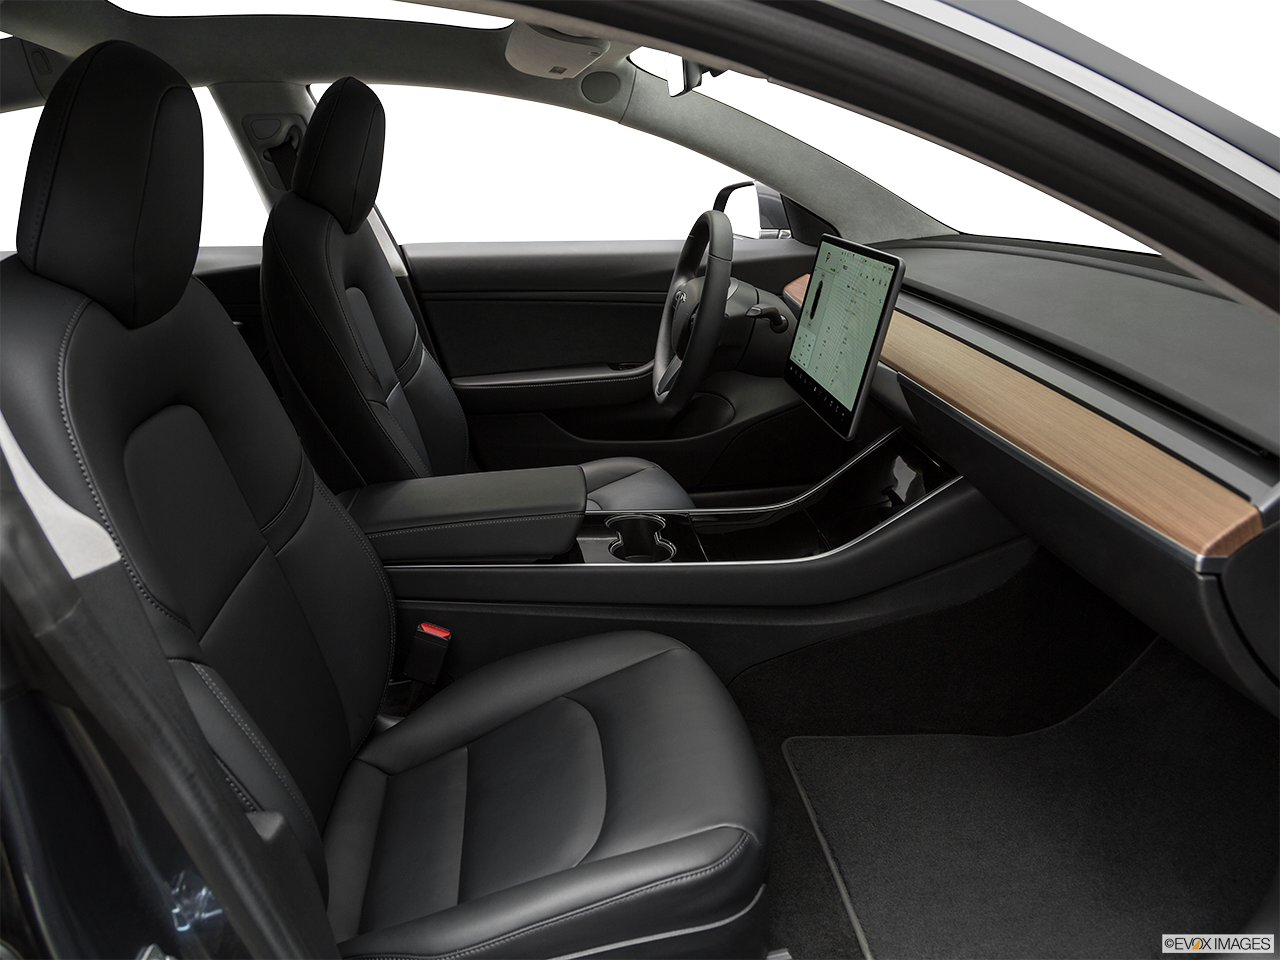 Interior view of the Tesla Model 3